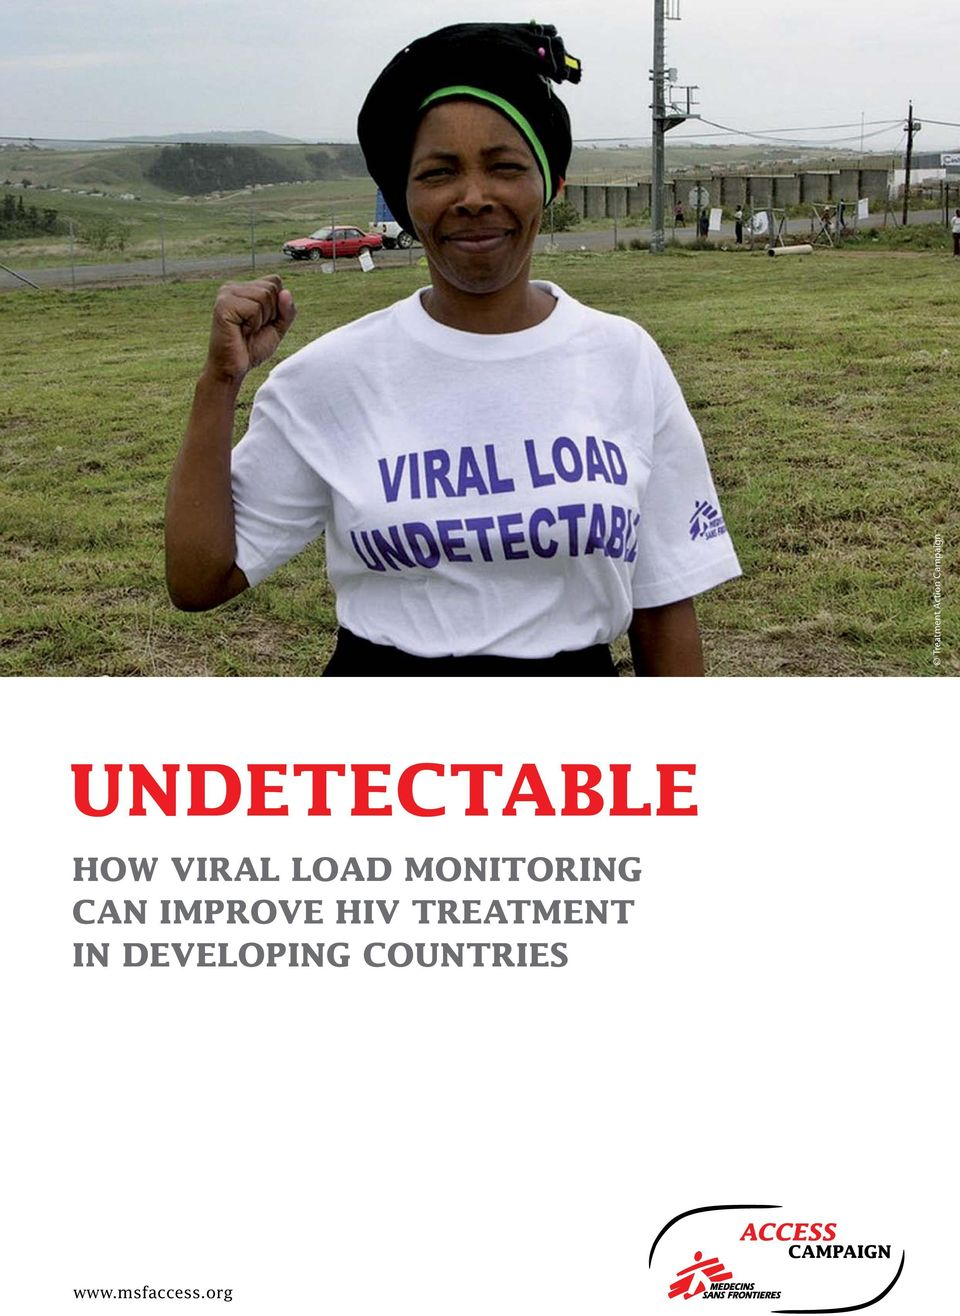 MONITORING CAN IMPROVE HIV